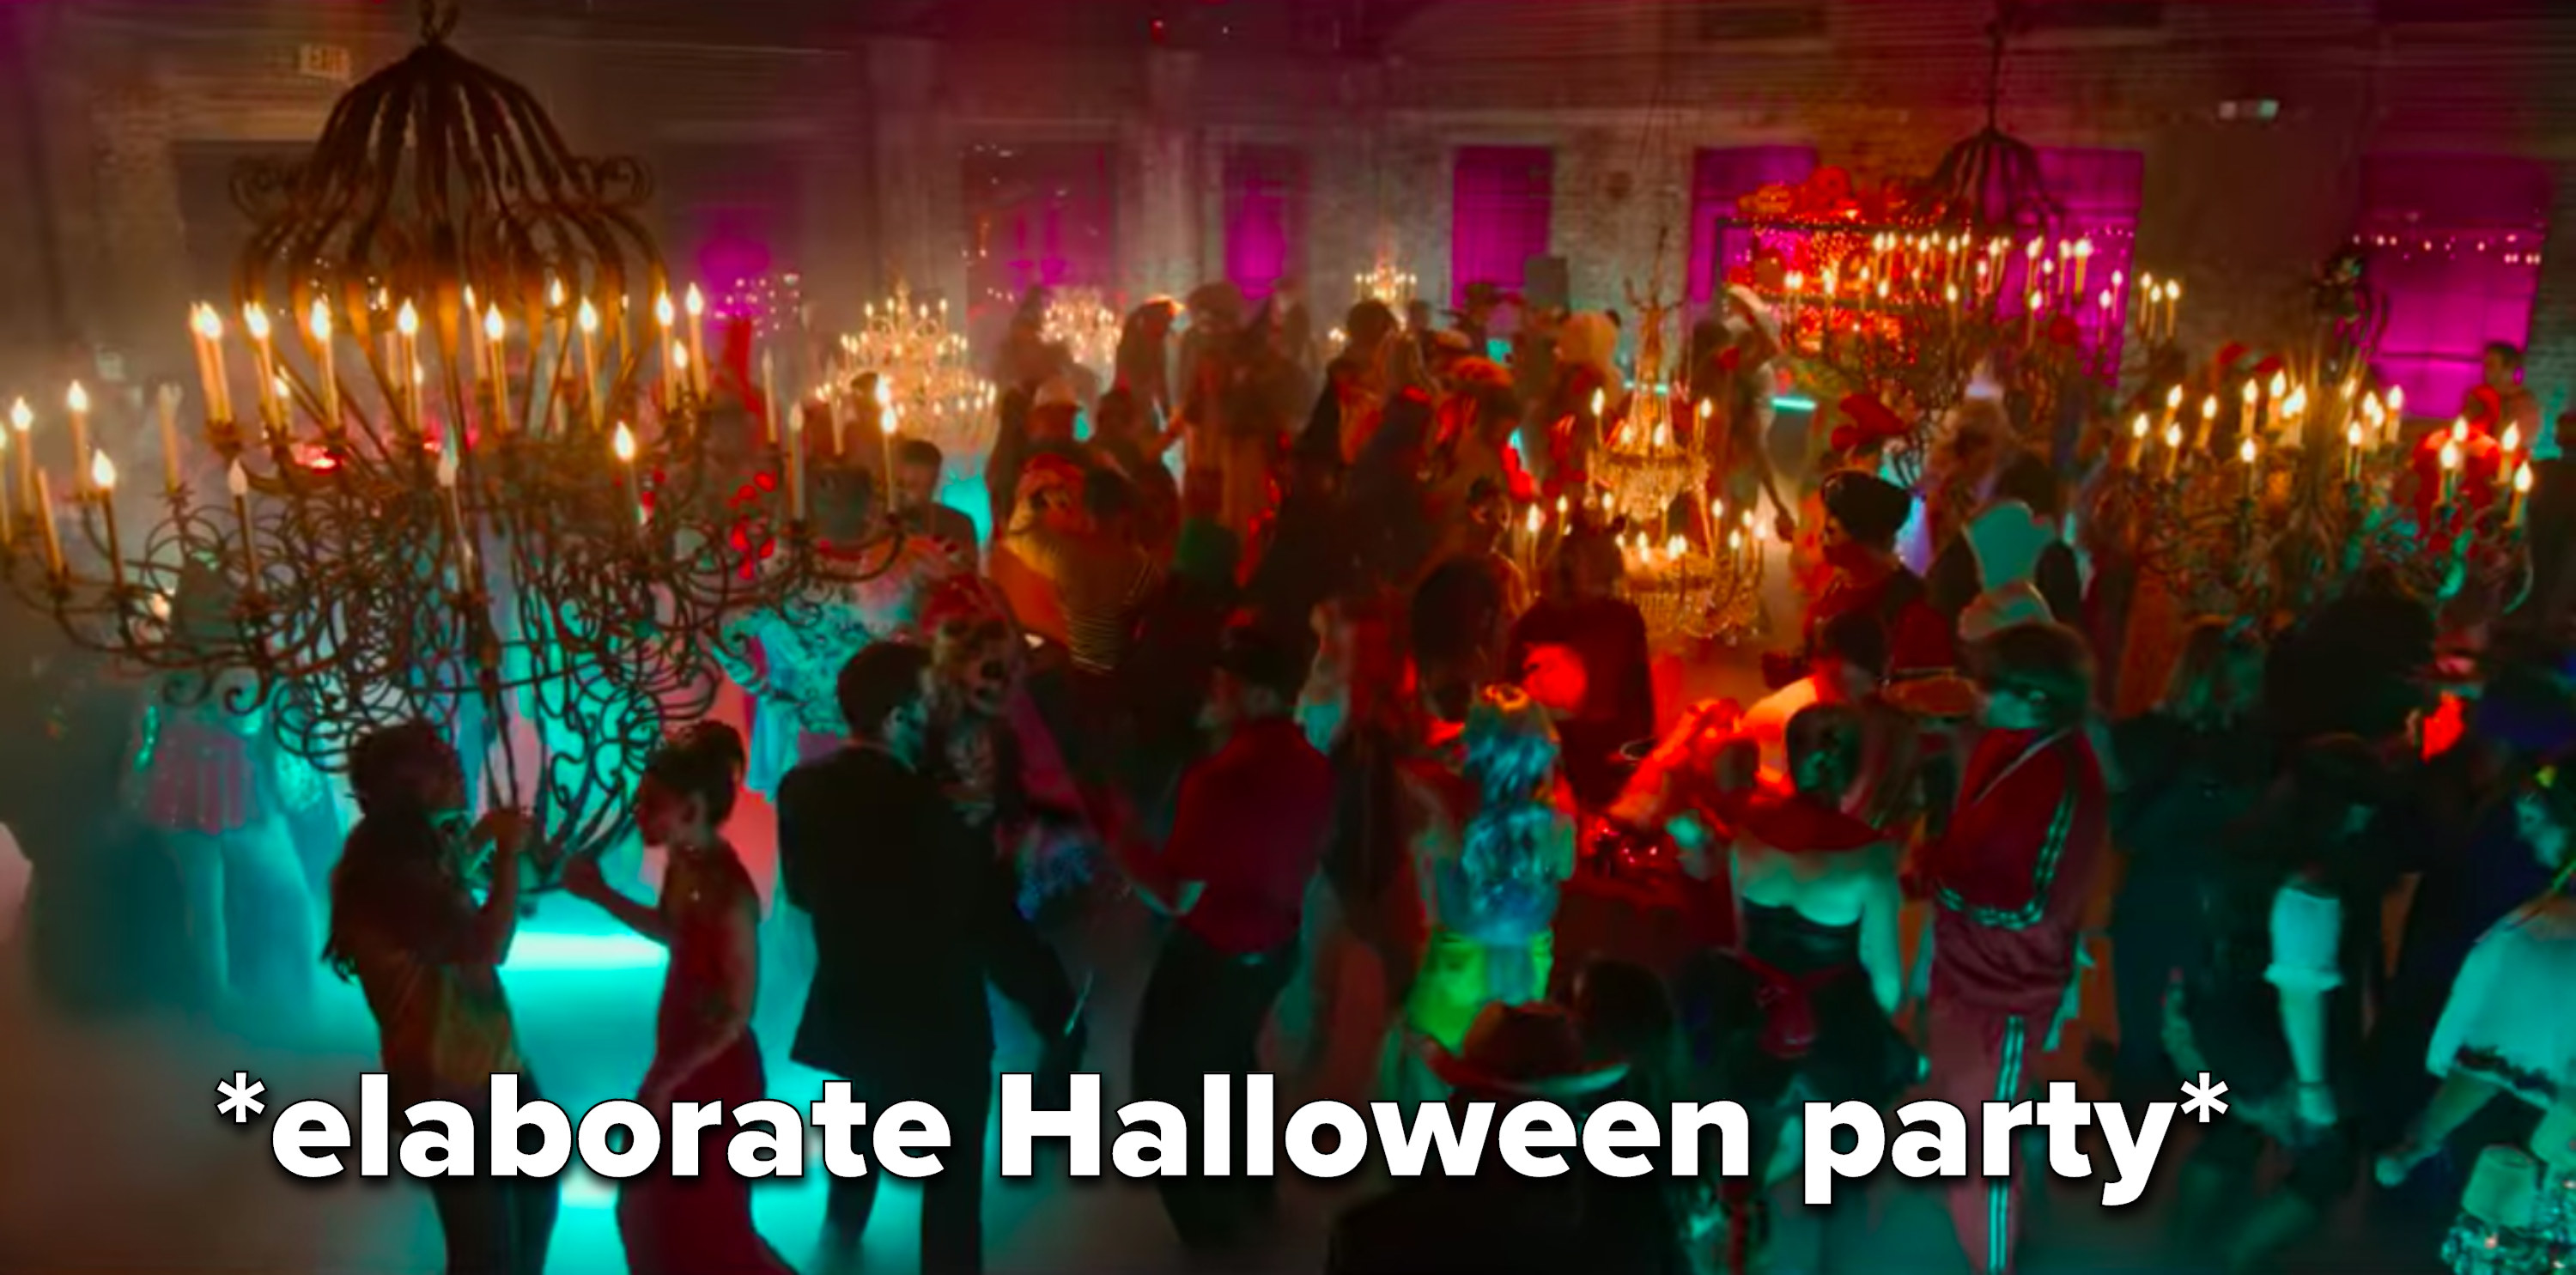 An elaborate Halloween party